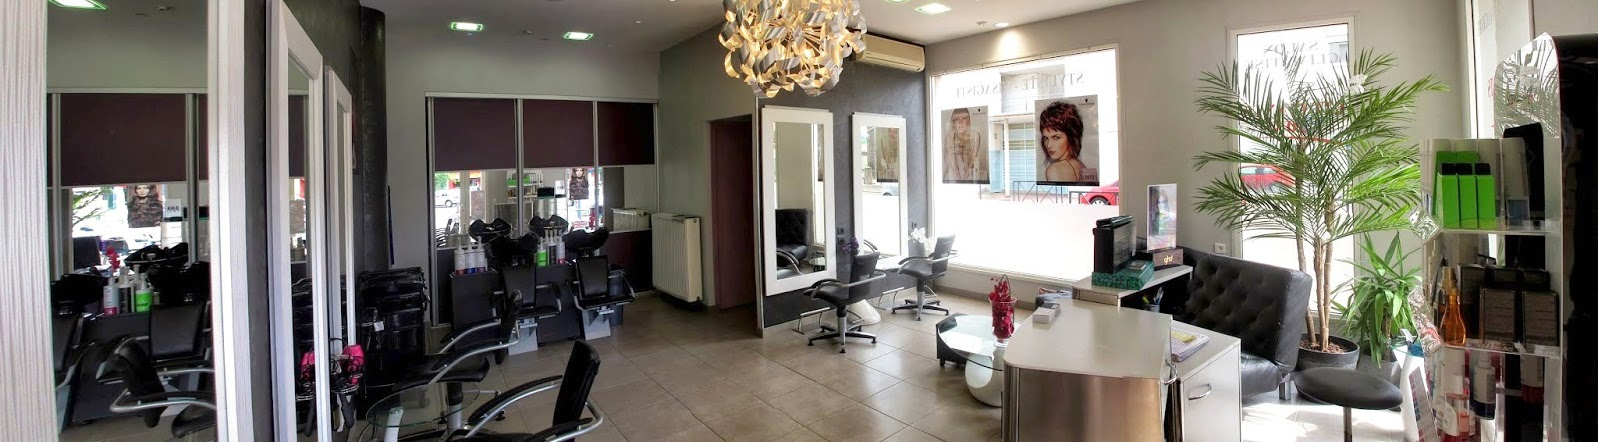 Face look coiffure clermont ferrand avis tarifs for Salon de coiffure clermont ferrand